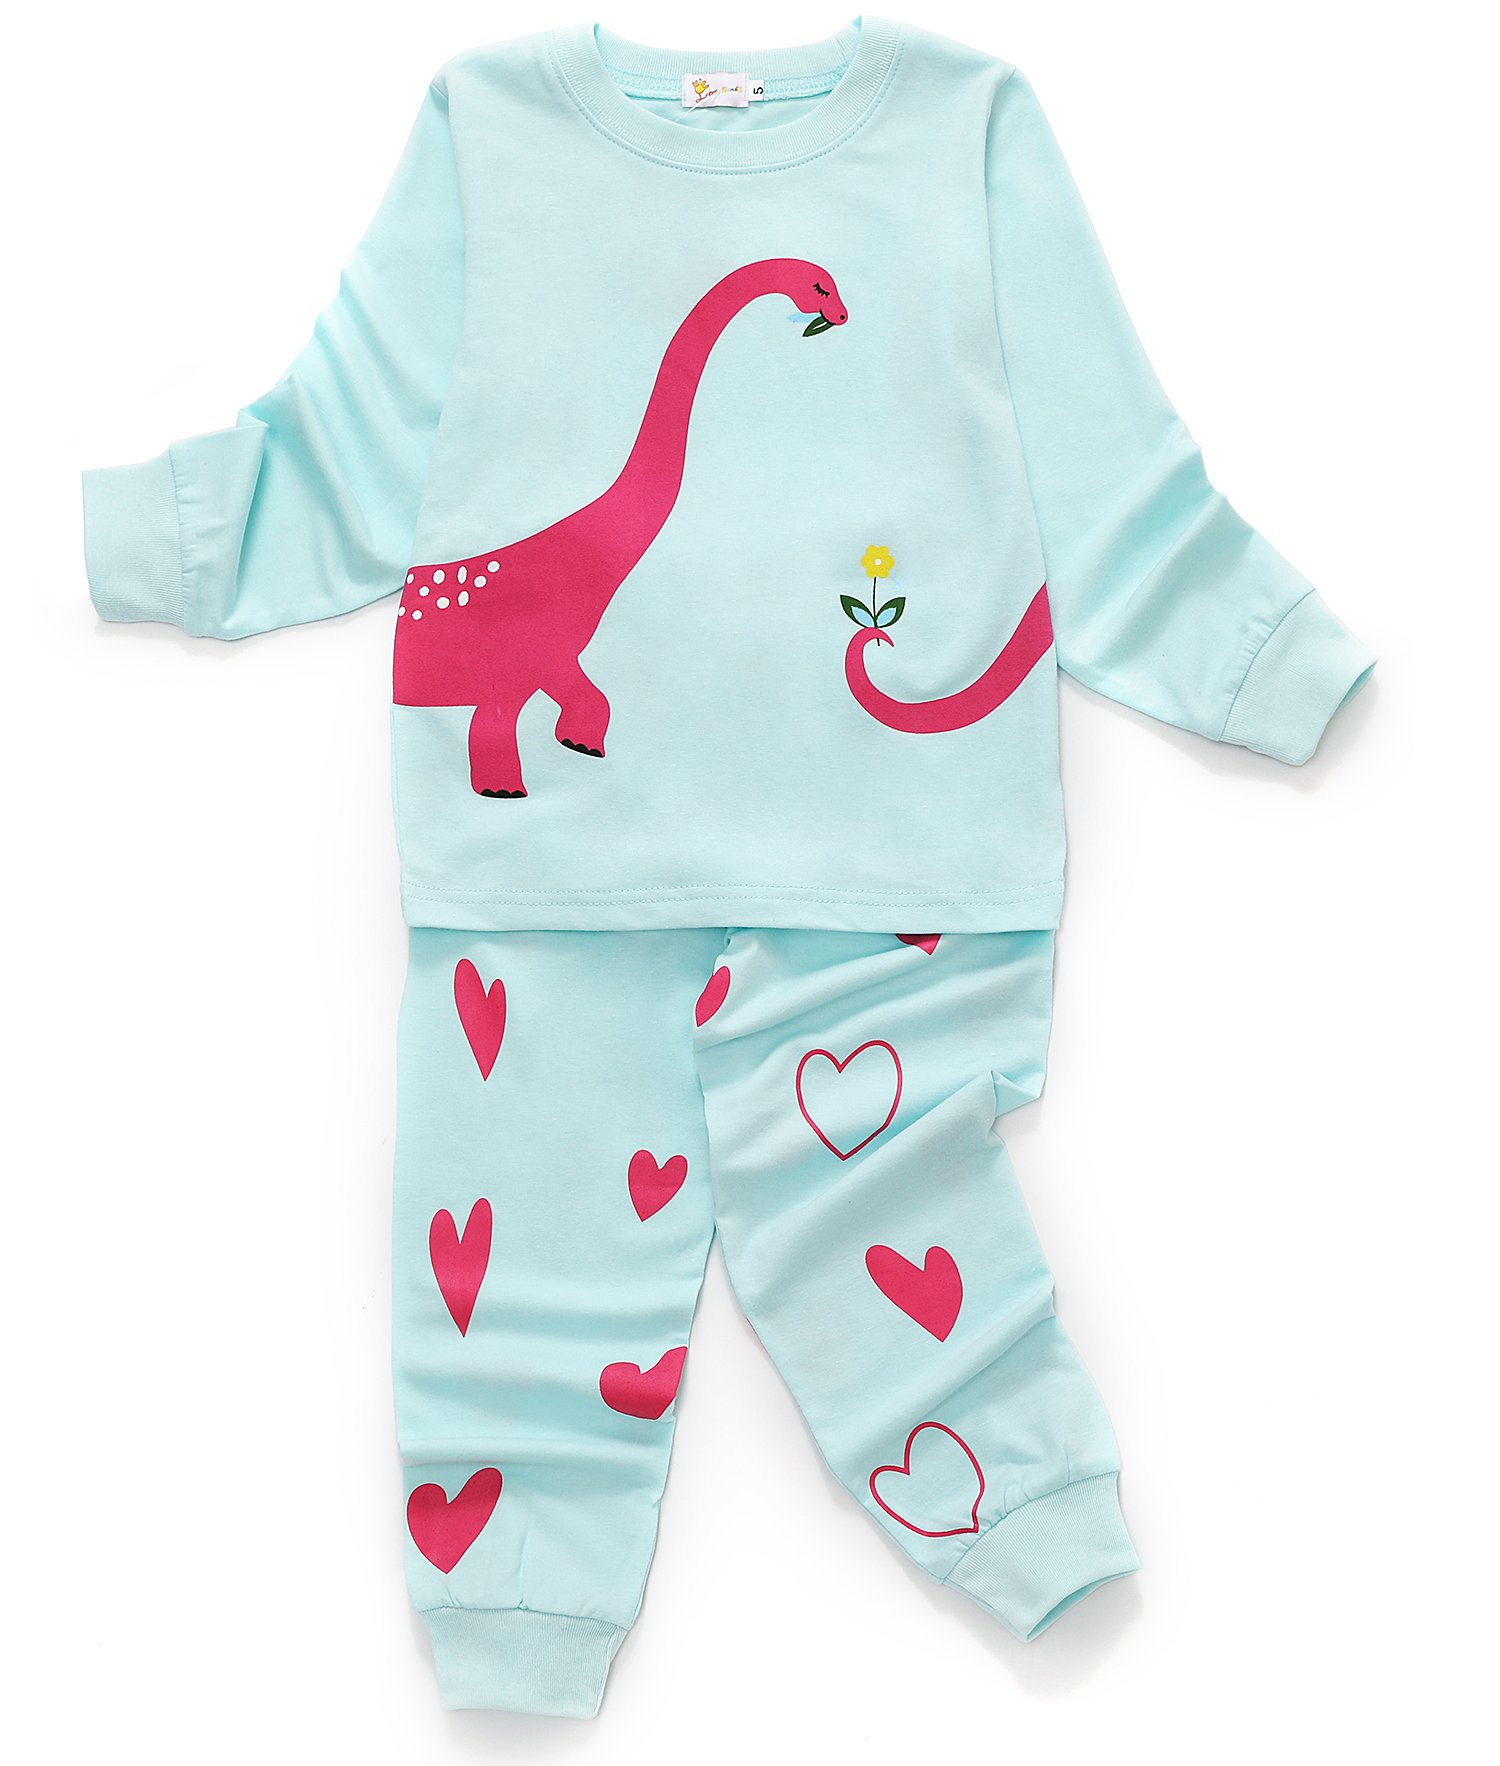 Dhasiue Dinosaur Kids & Toddler 2 Piece Cotton Pajamas Sets Girls Long Sleeve Pjs Set Children Sleepwear 3-4 Years